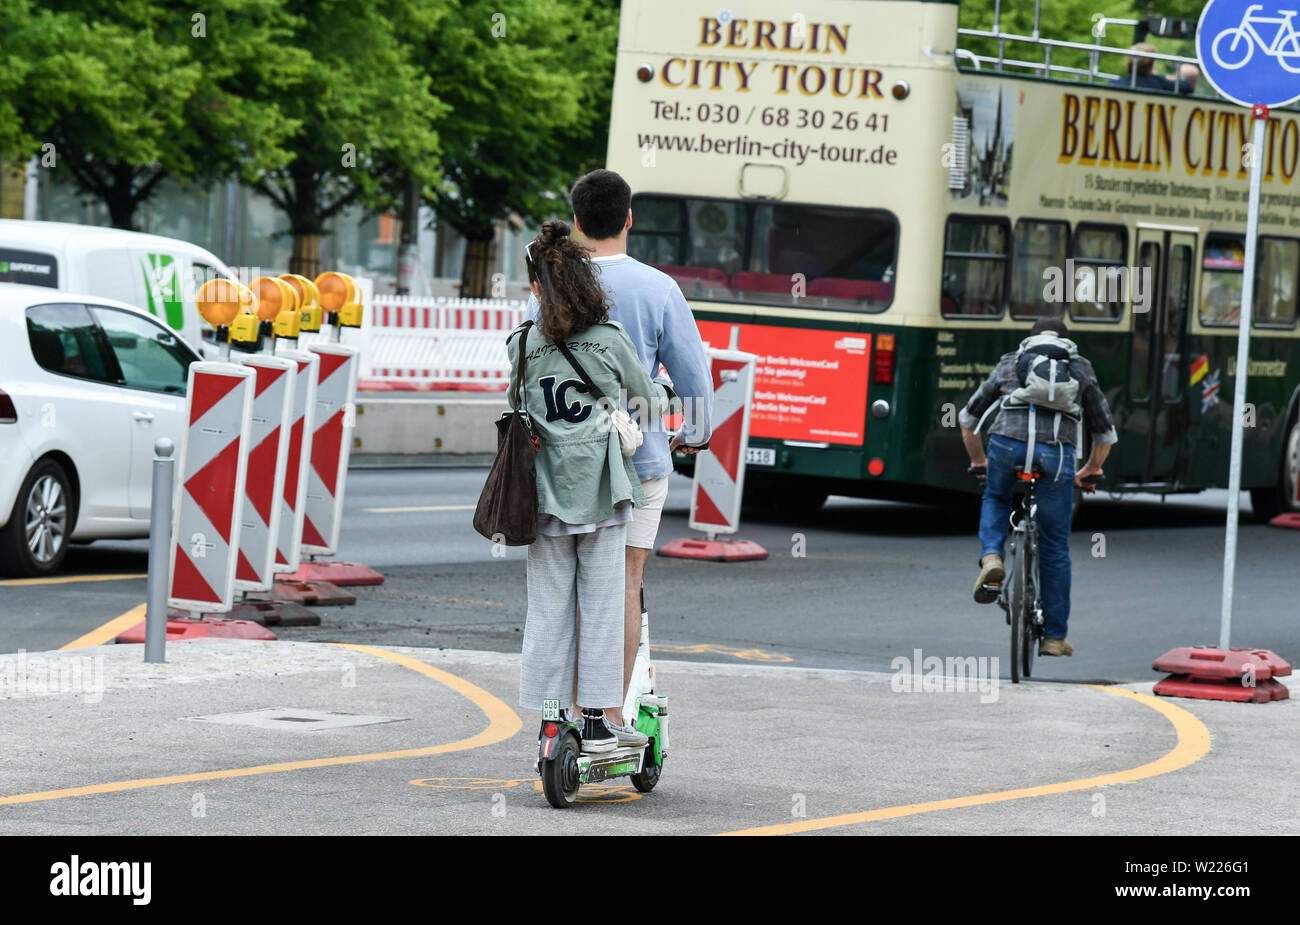 05 July 2019, Berlin: Two people drive together at the same time on an electric pedal scooter. E-scooters may be used in Germany since mid-June. Photo: Jens Kalaene/dpa-Zentralbild/ZB Stock Photo